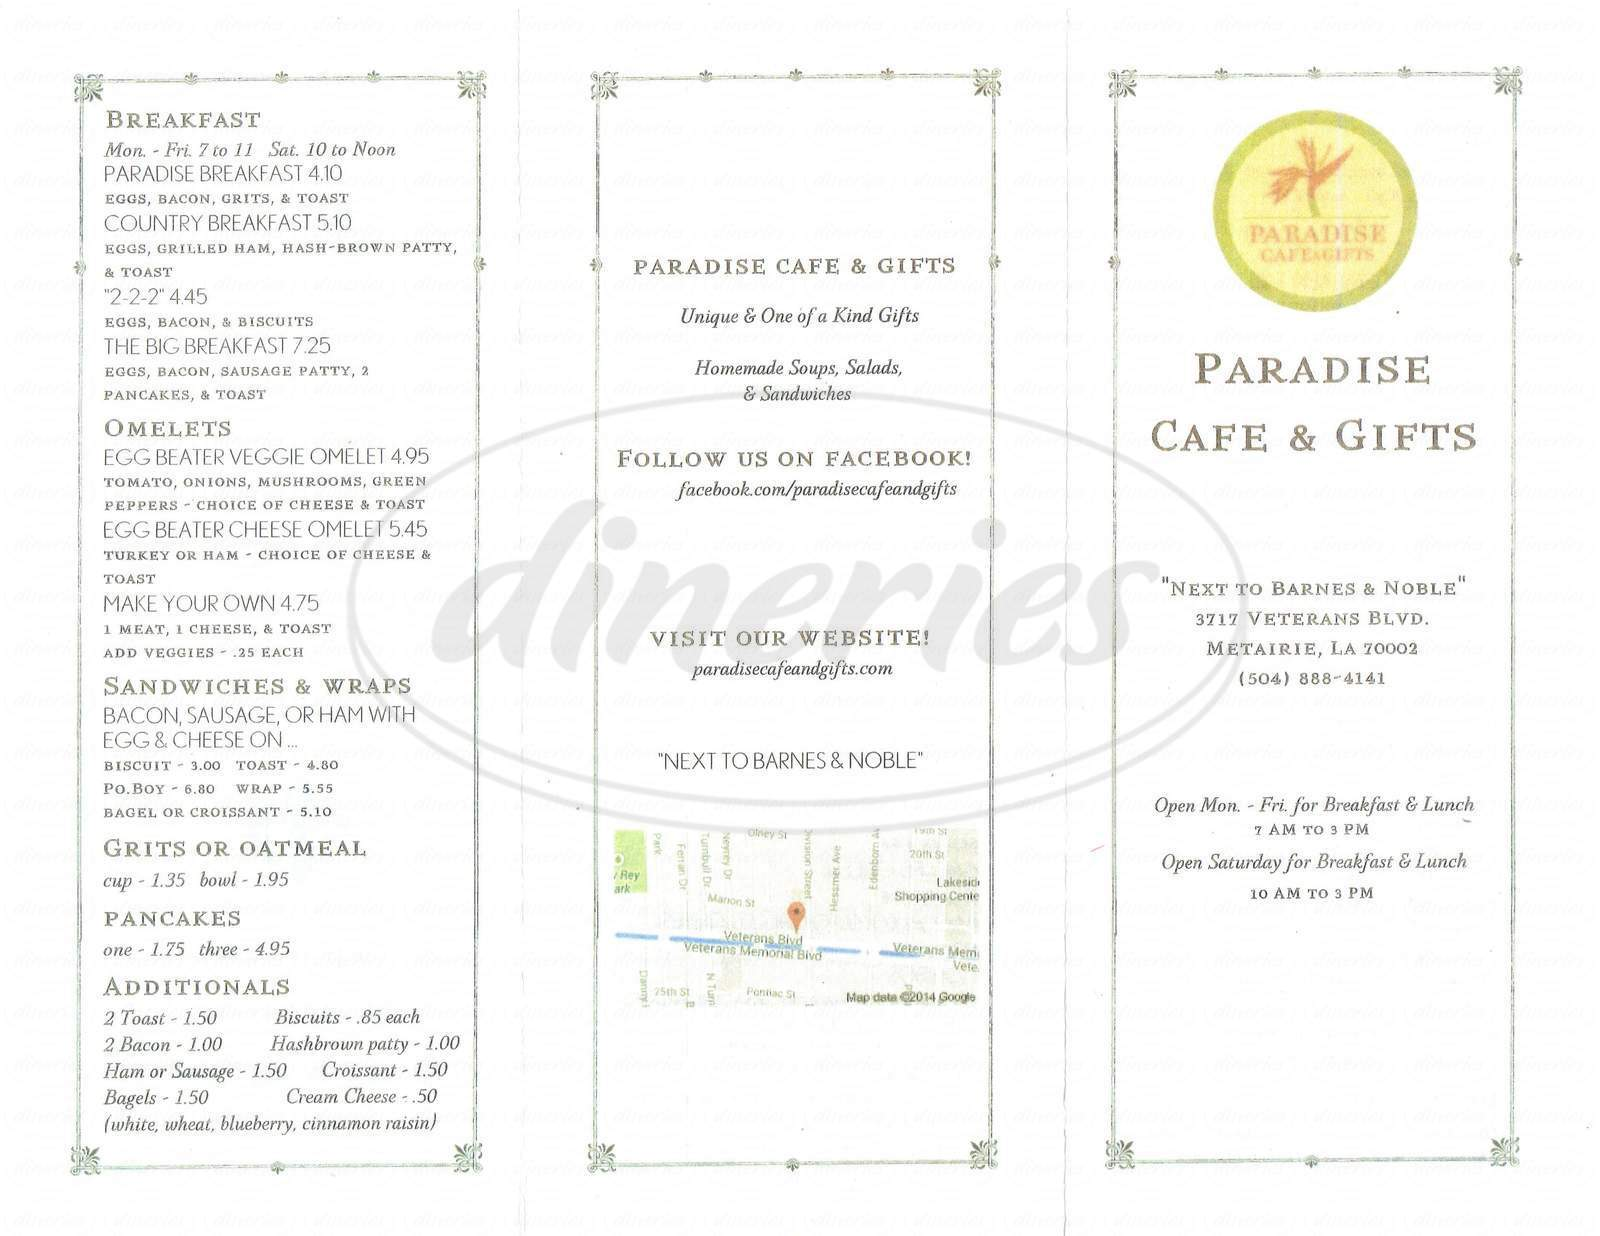 menu for Paradise Cafe